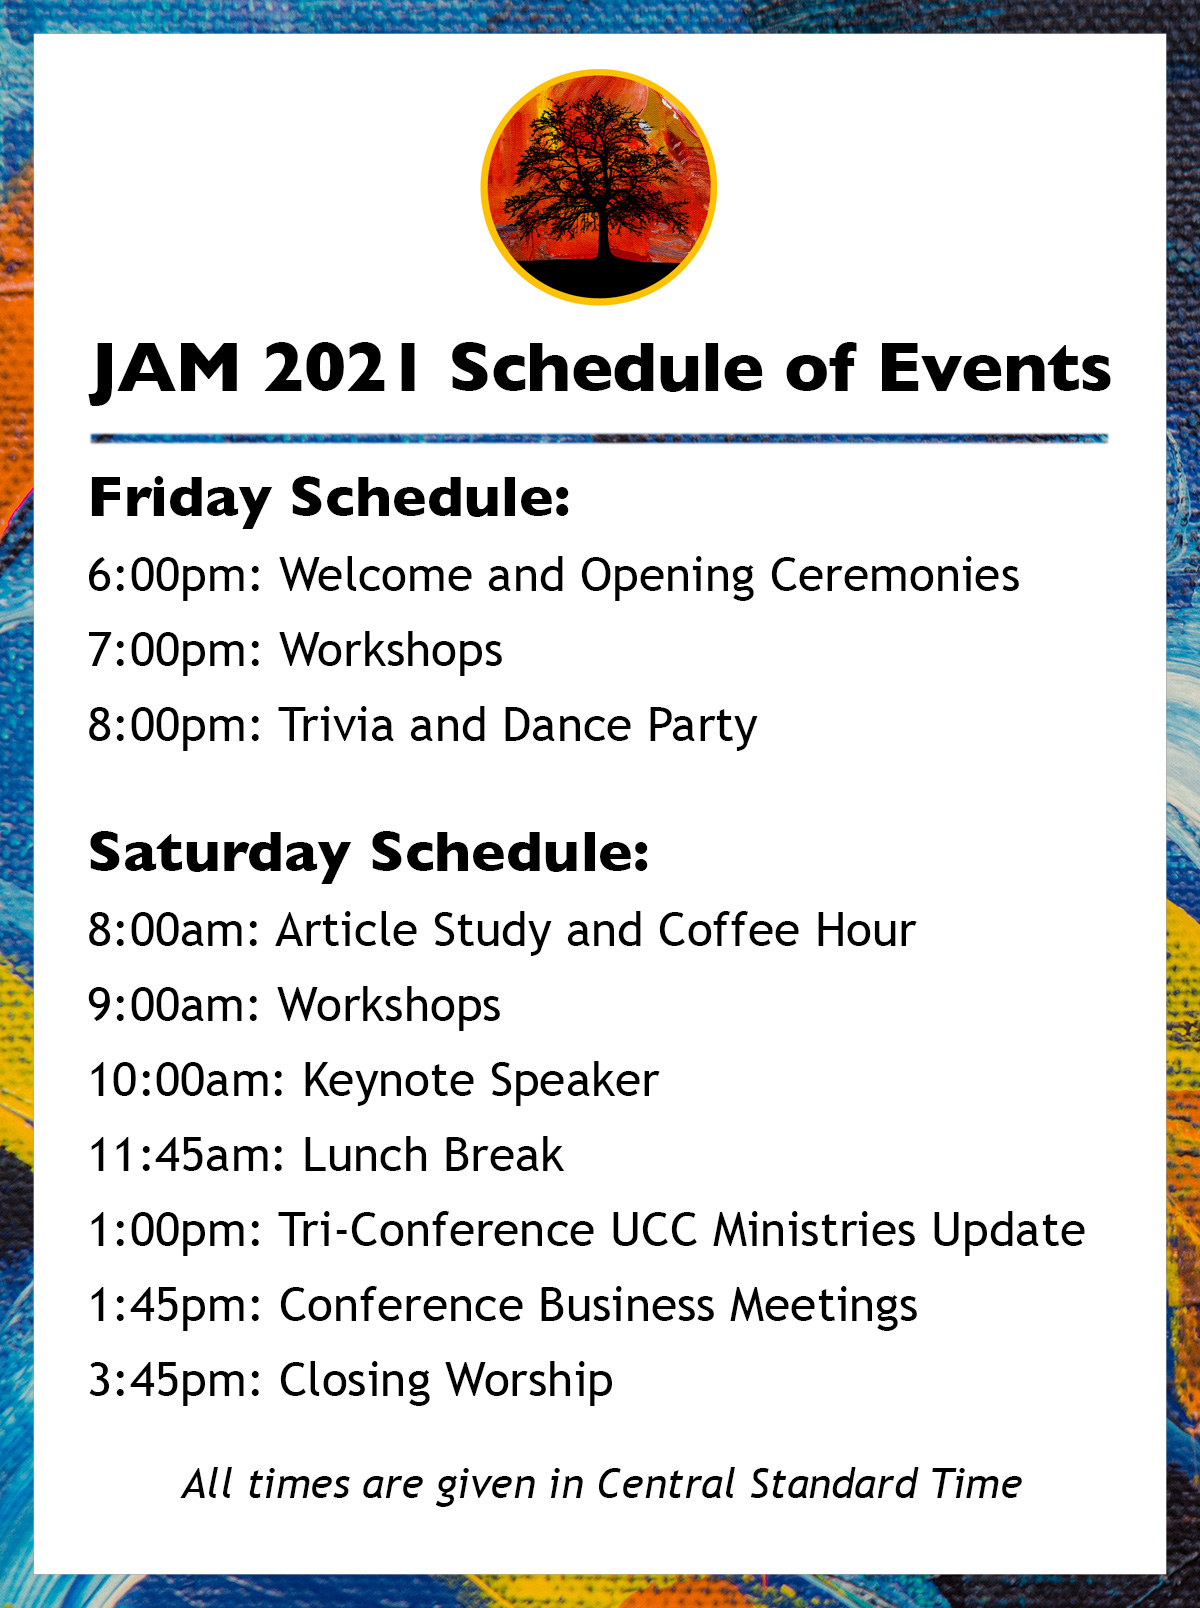 Friday Schedule: 6:00pm - Welcome and Opening Ceremonies 7:00pm - Workshops 8:00pm - Trivia and Dance Party Saturday Schedule: 8:00am - Article Study and Coffee Hour 9:00am - Workshops 10:00am - Keynote Speaker - Winona LaDuke 11:45am - Lunch Break 1:00pm - Tri-Conference UCC Ministries Update 1:45pm - Separate Conference Business Meetings 3:45pm - Closing Worship